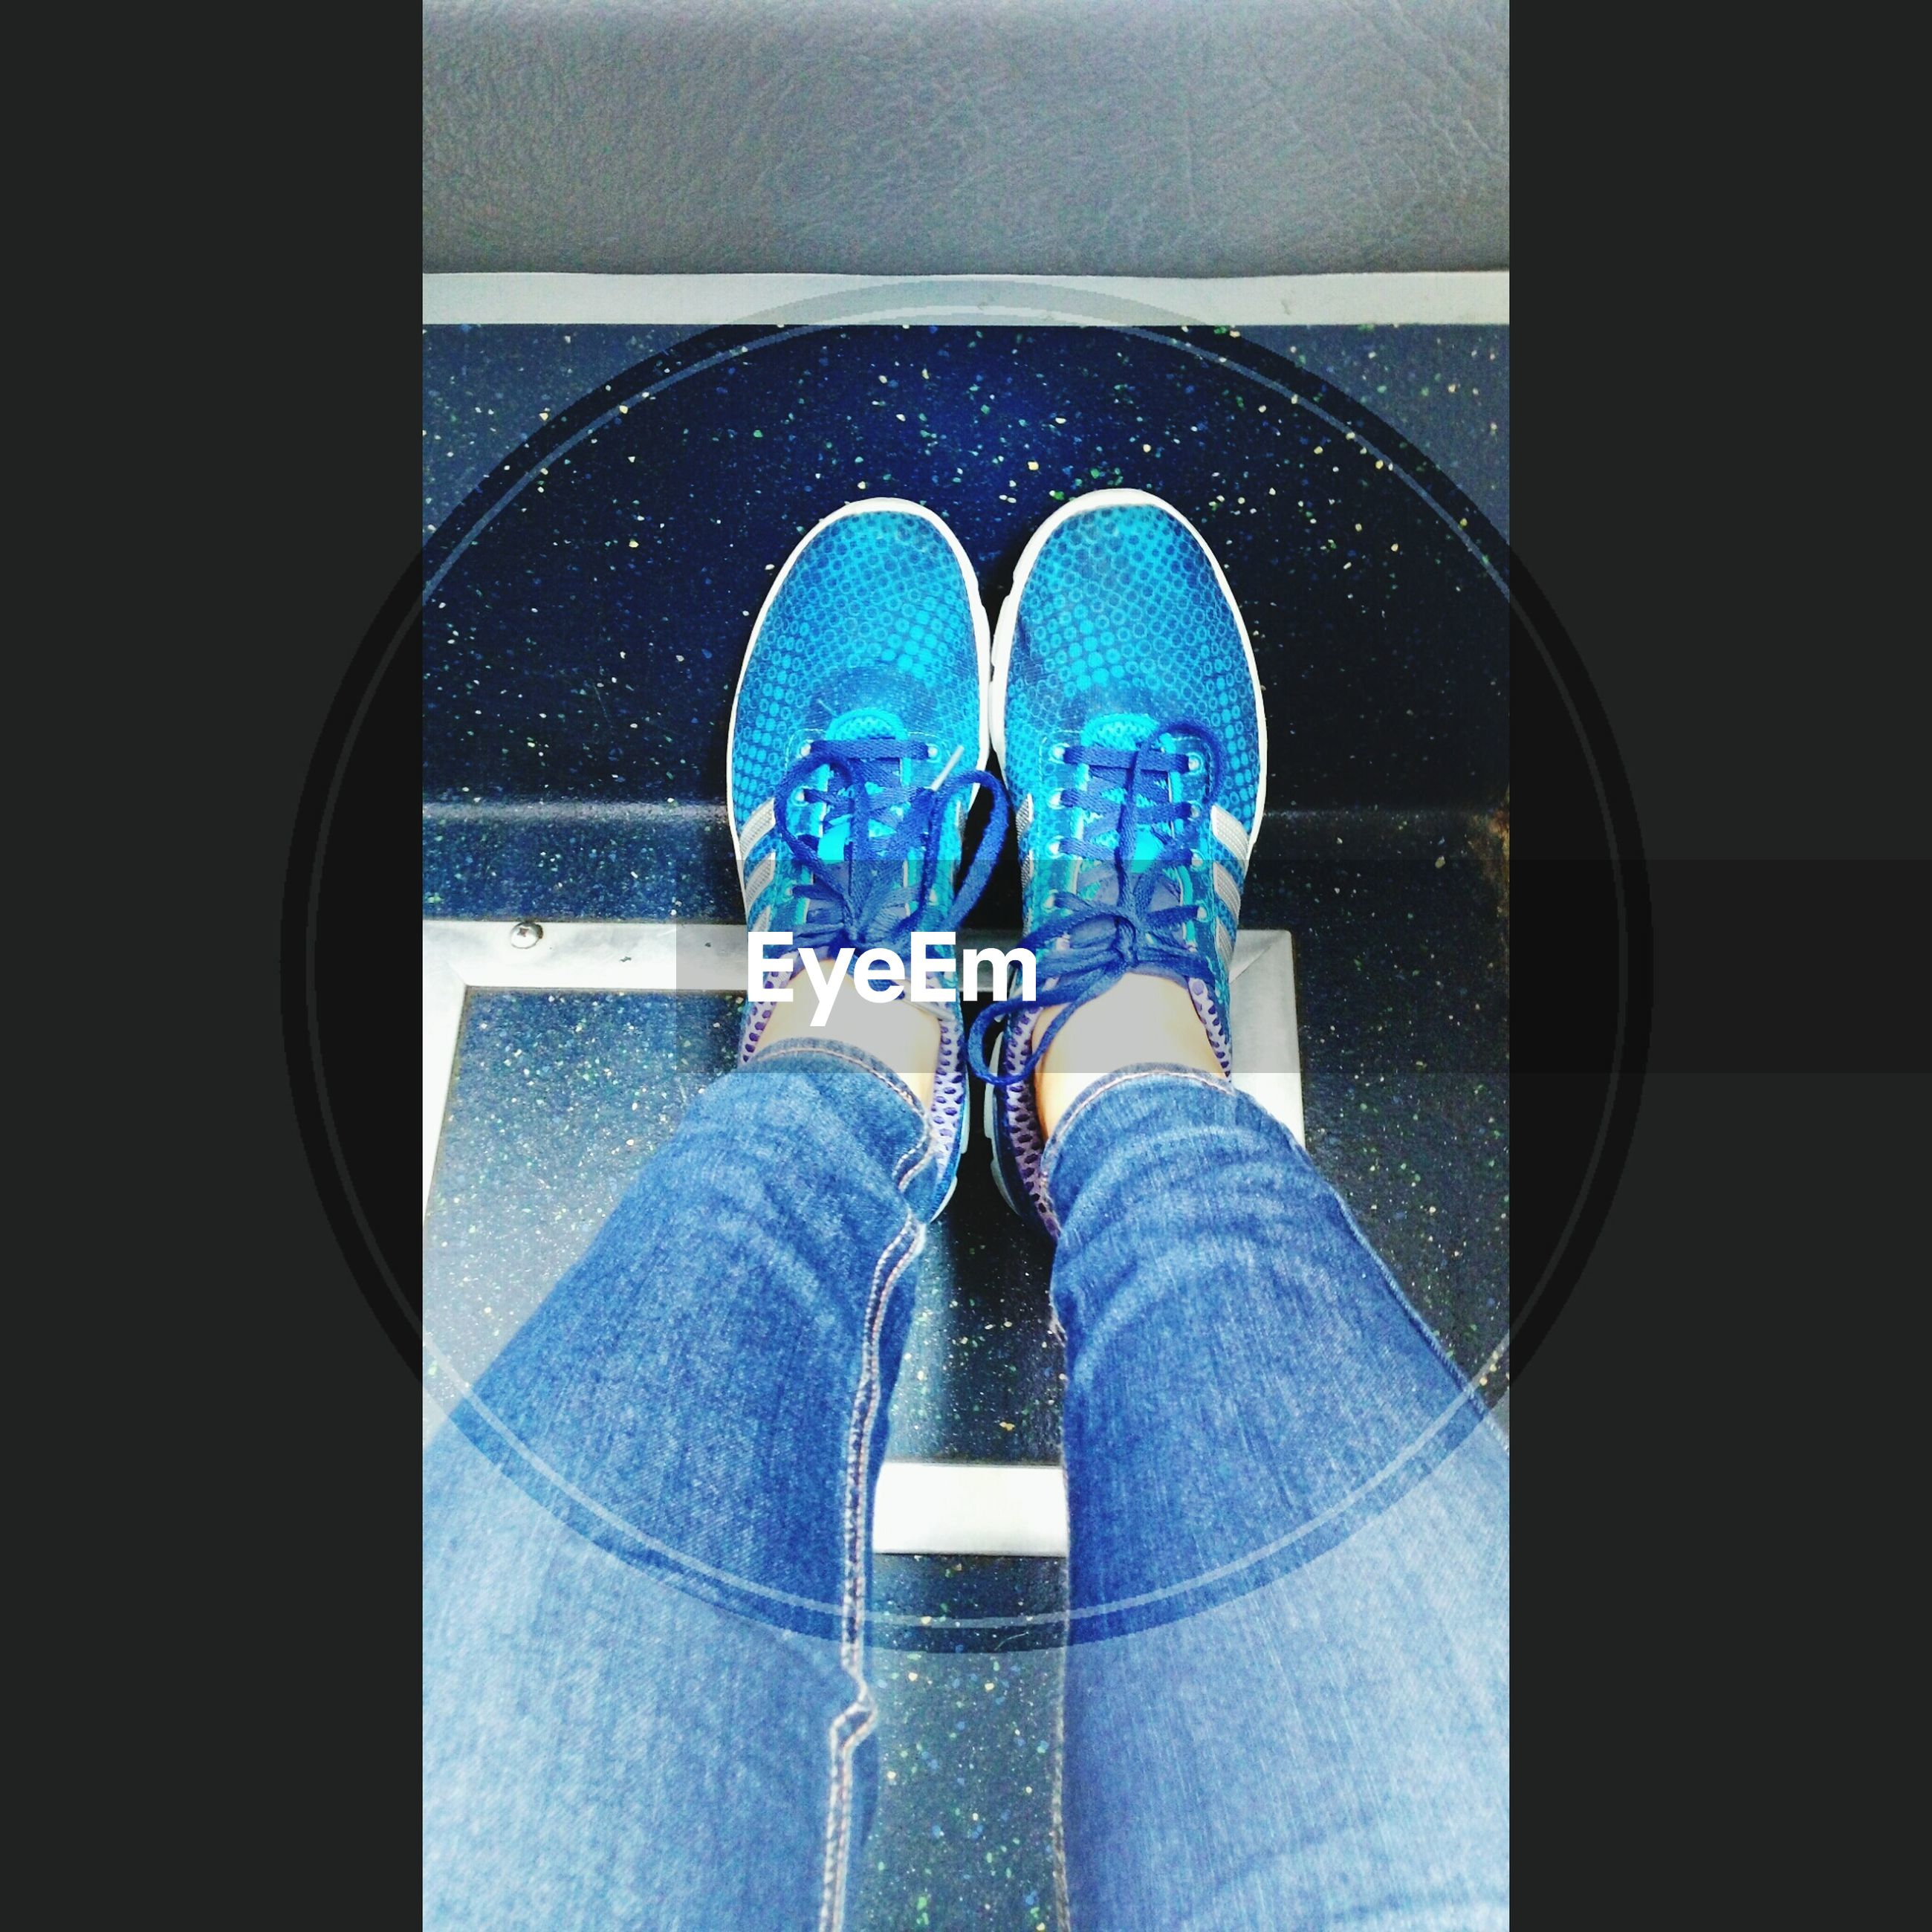 indoors, blue, lifestyles, low section, person, leisure activity, standing, shoe, casual clothing, men, rear view, sitting, jeans, personal perspective, close-up, day